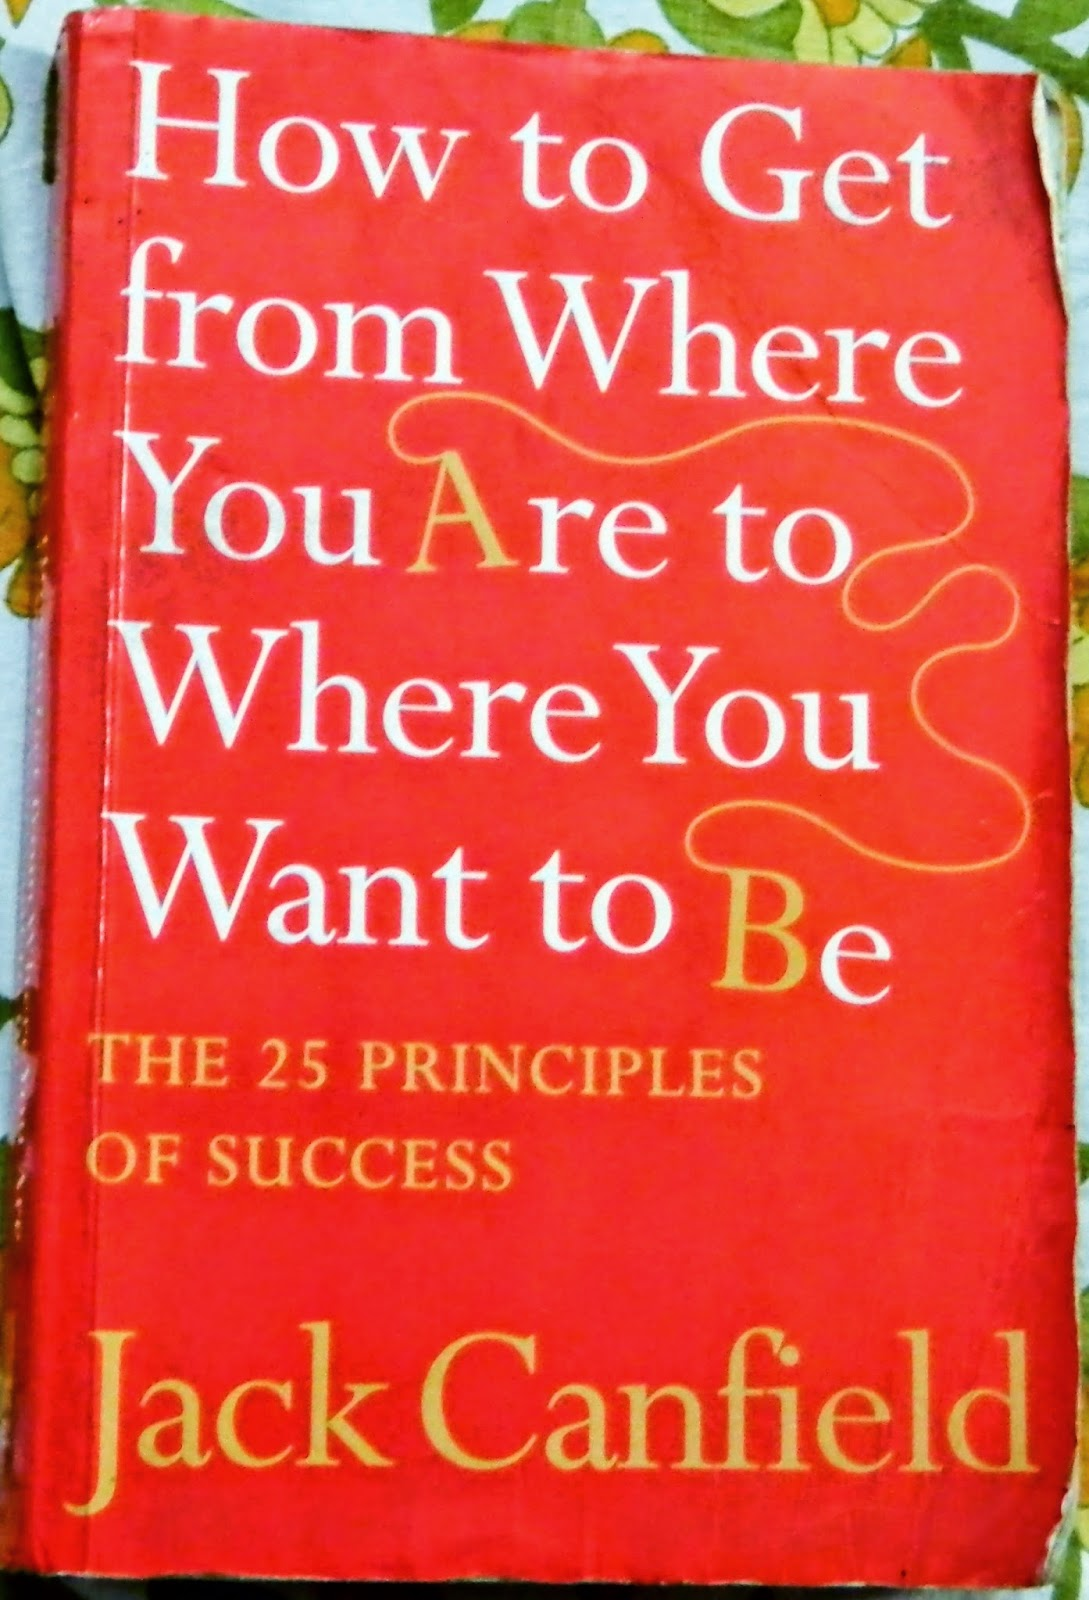 How to get from where you are to where you want to be by Jack Canfield book